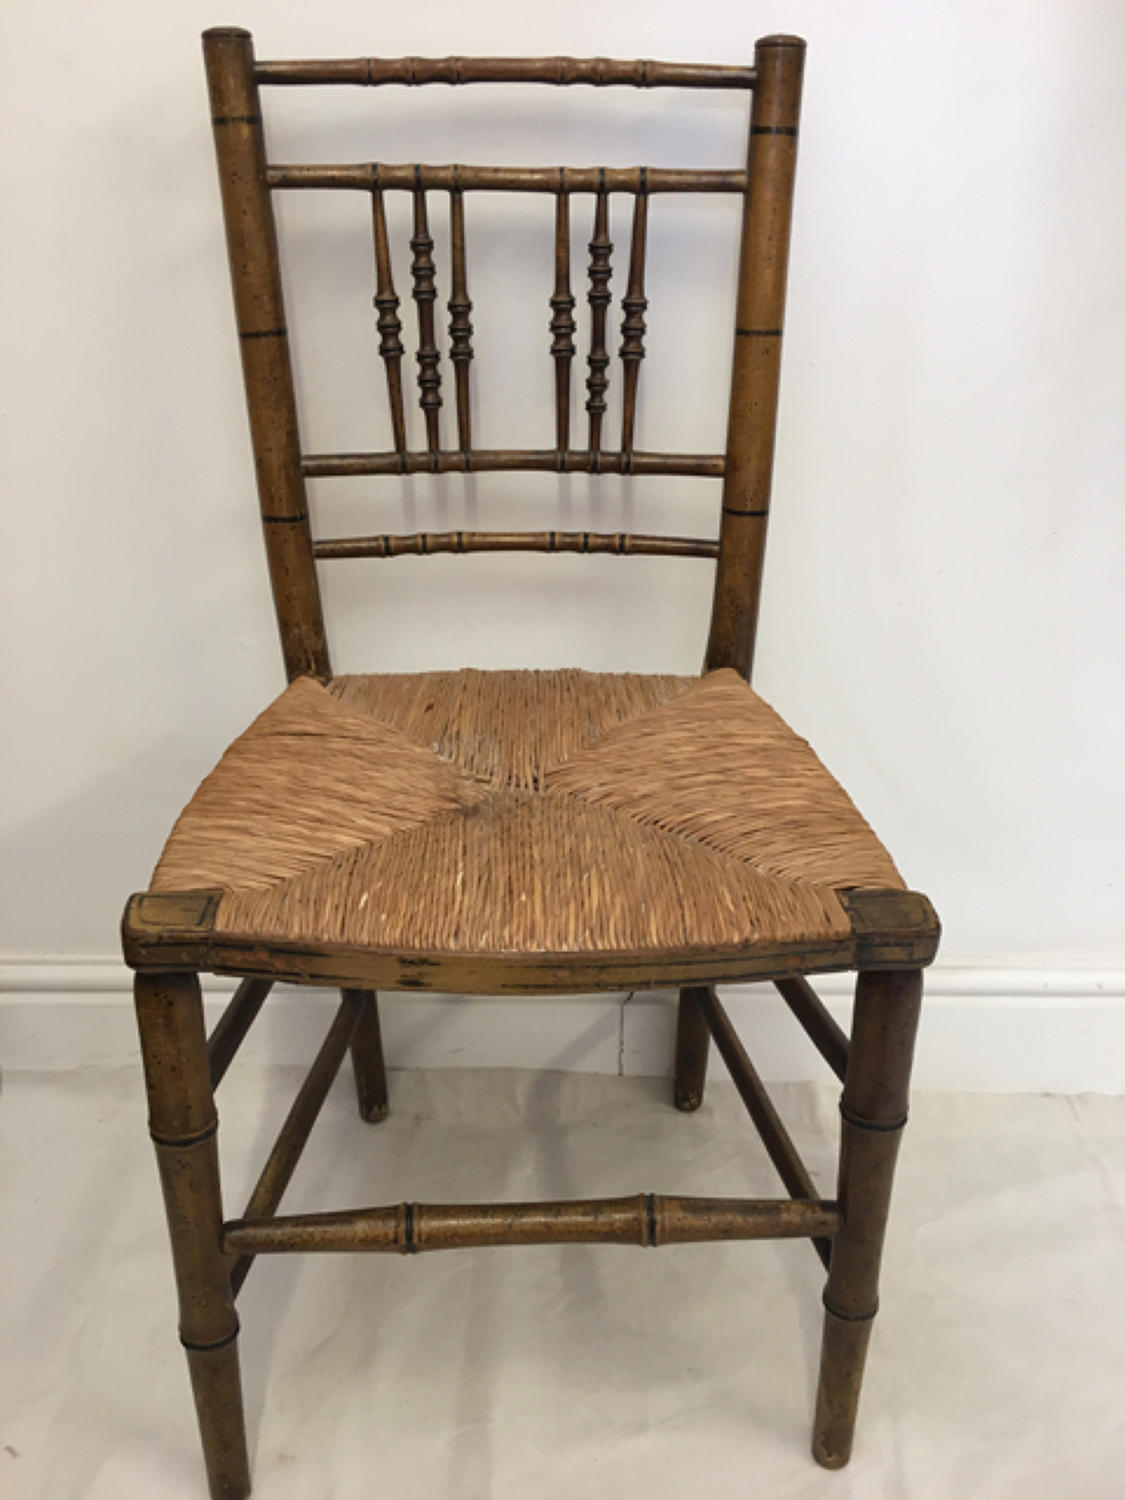 Early 19th Century chair with faux bamboo paint finish